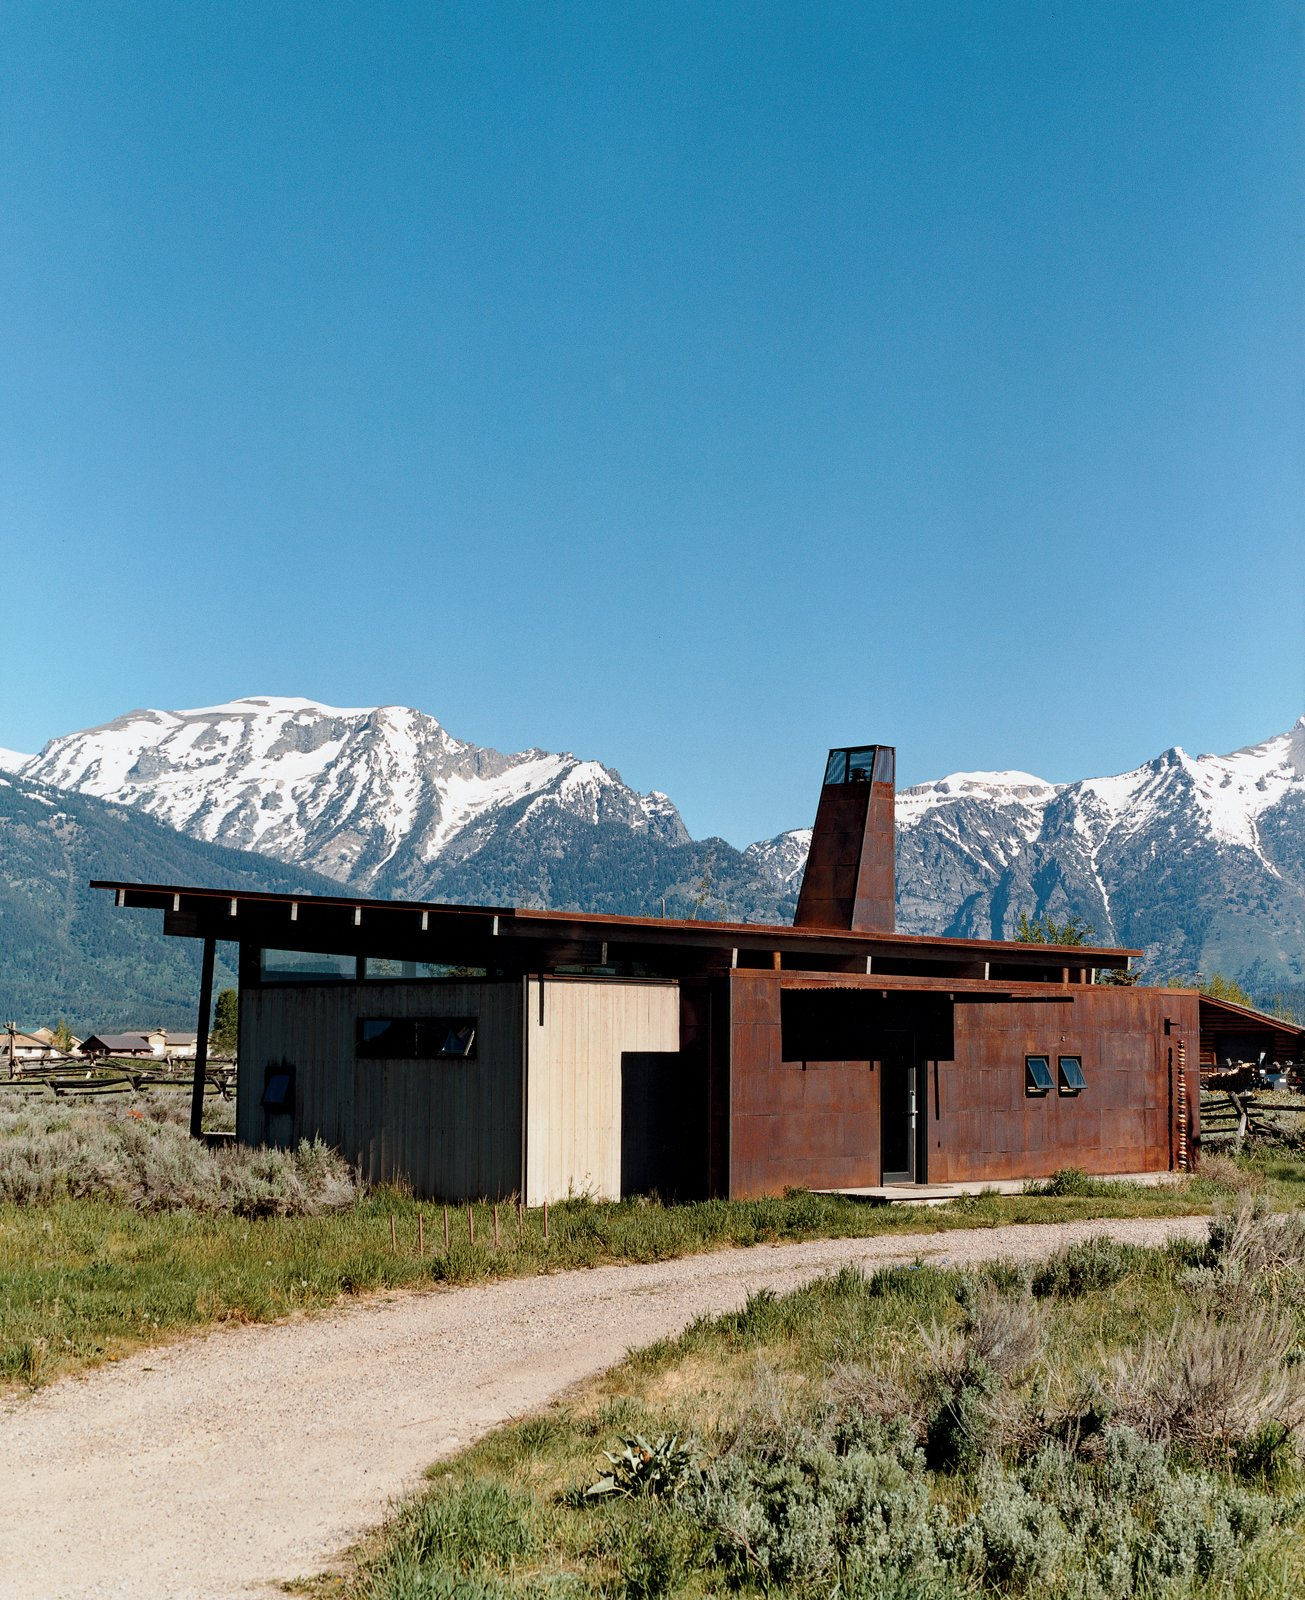 Exterior, House Building Type, Metal Siding Material, Shed RoofLine, and Cabin Building Type Eric Logan's guest house is adjacent to his family's home. The interiors are made up of oiled masonite wall paneling, raw MDF cabinetry, and an oiled concrete floor.  Small Spaces in Rural Places by Kate Santos from Jackson, WY